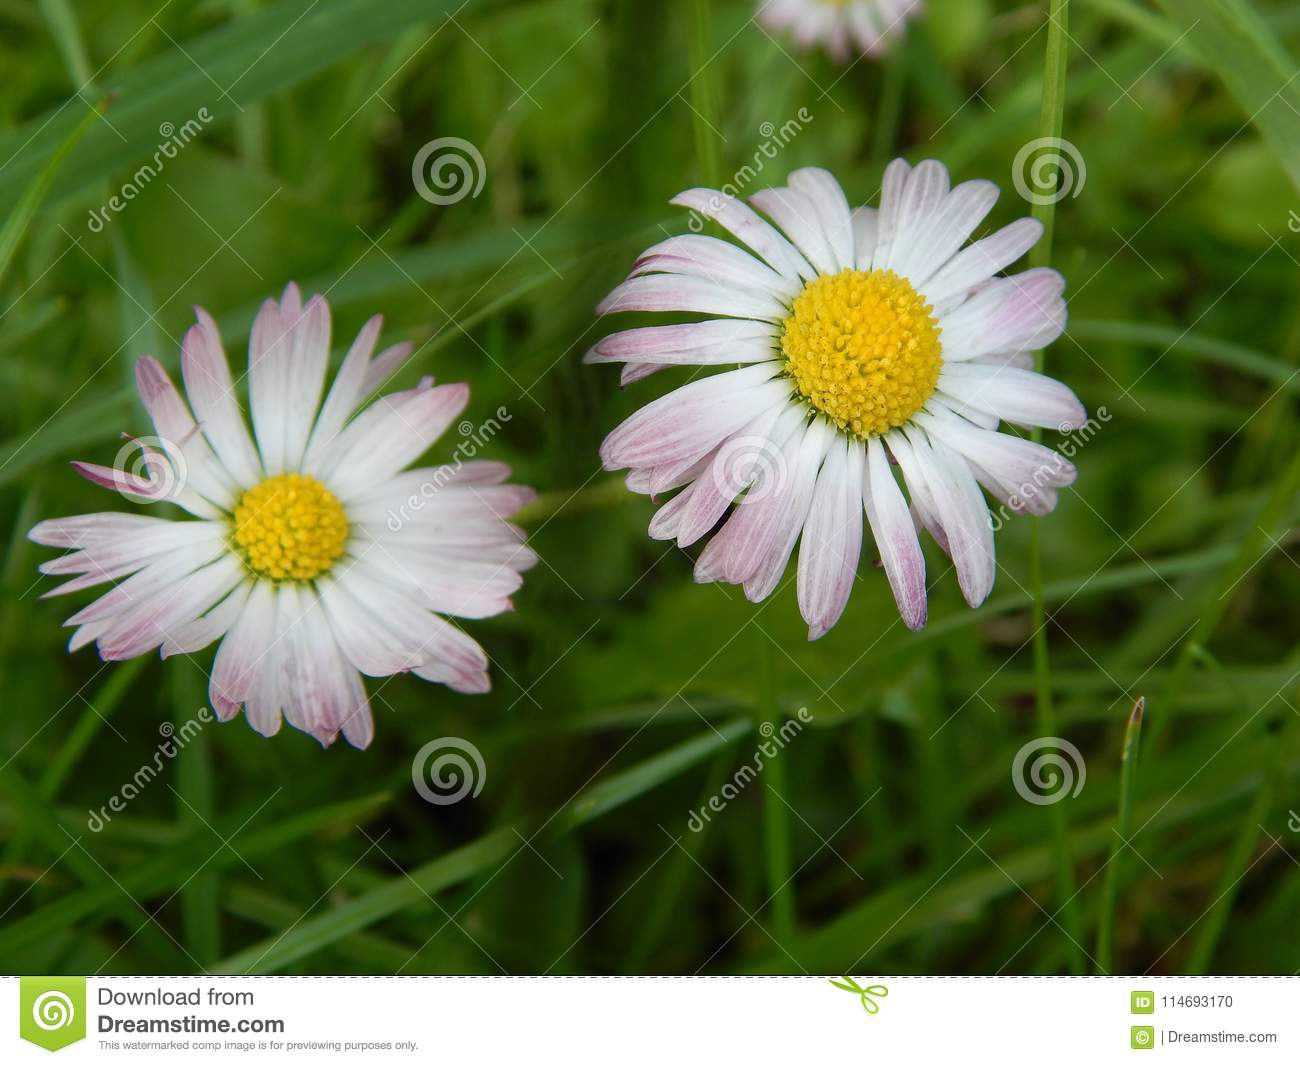 Flowers beautiful garden plant flower daisy with white petals stock download flowers beautiful garden plant flower daisy with white petals stock photo image of flower mightylinksfo